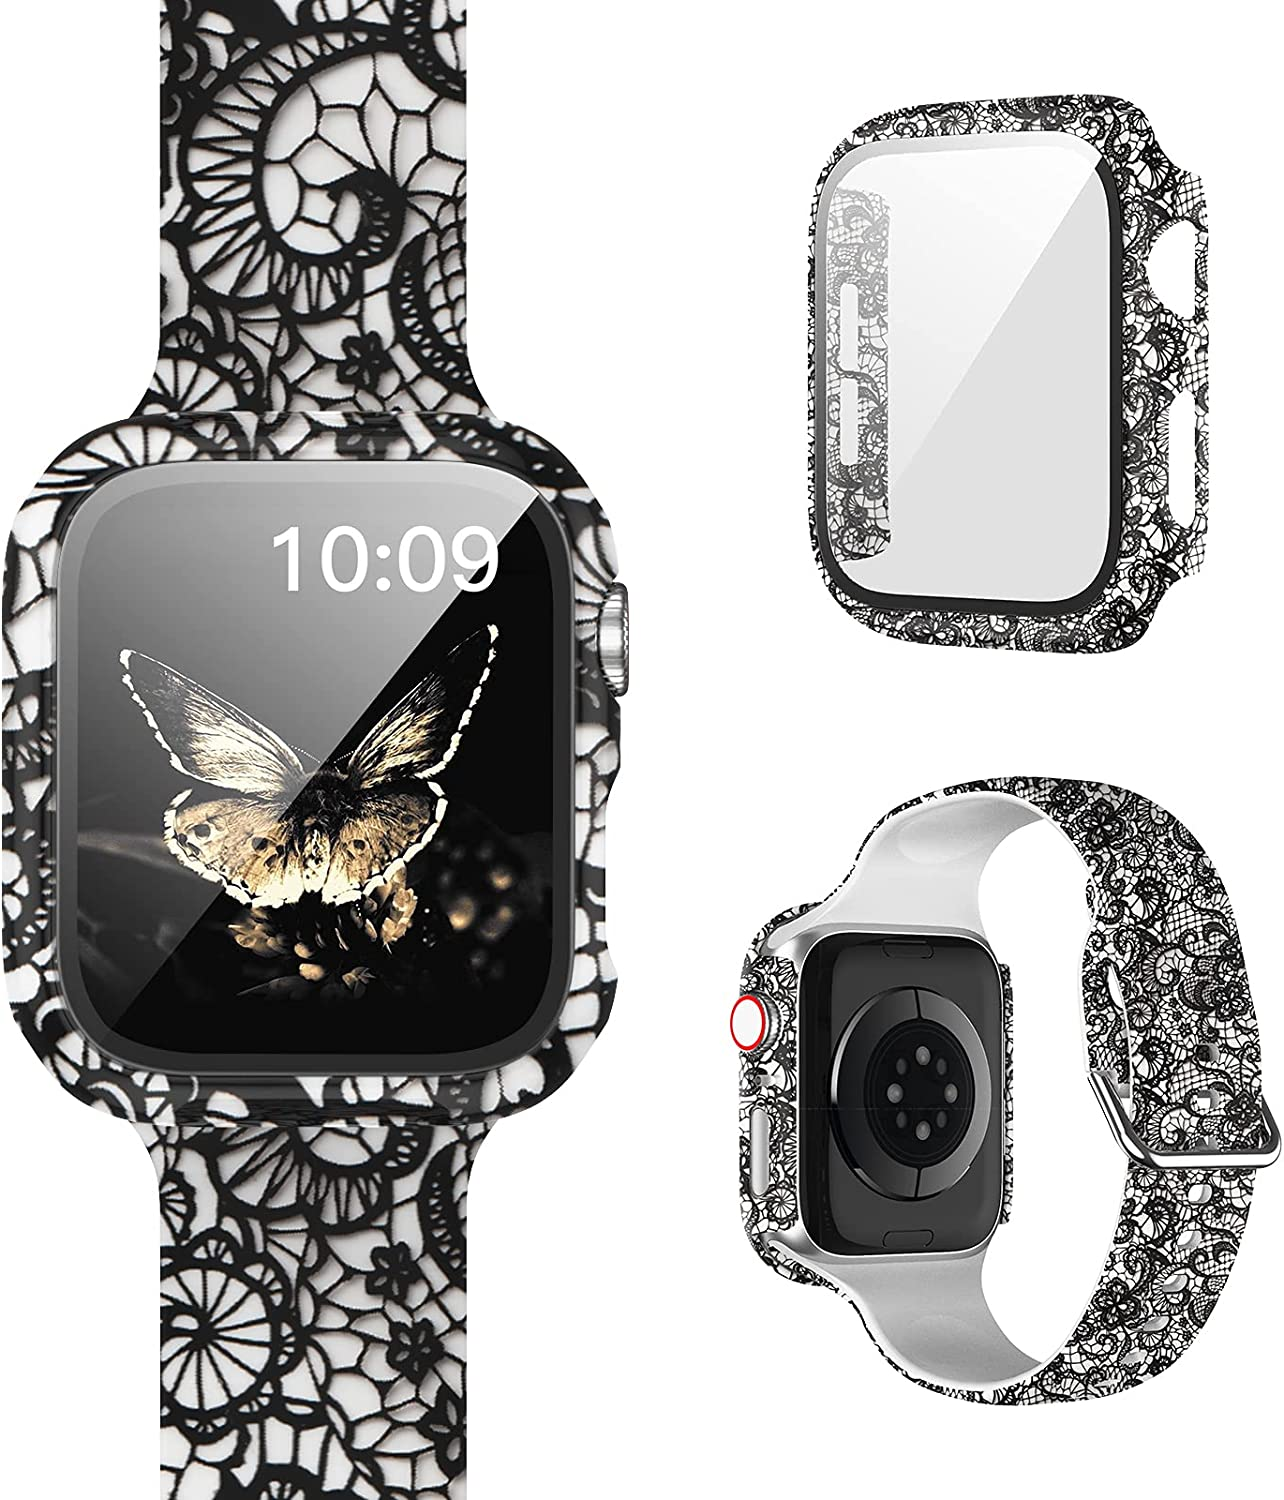 [1+1] Pack Compatible for Apple Watch Band with Case for Apple Watch Series 42mm 3/2/1, Floral Printed Pattern Replacement Strap + Protective Case with Screen Protector for iWatch Accessories